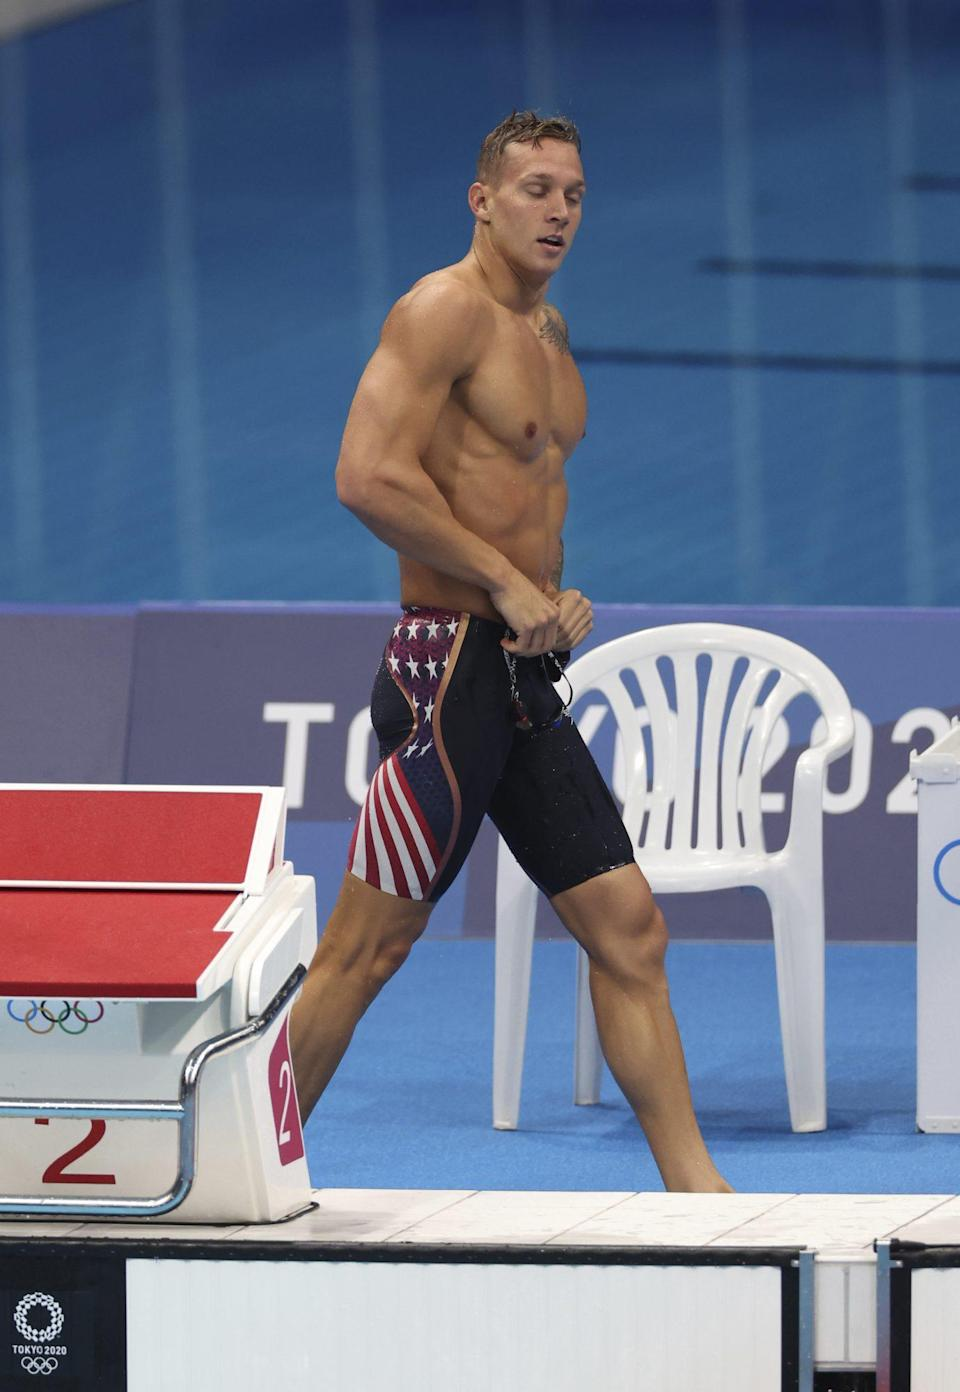 <p>Tokyo marked the second Games for Dressel, who competed and medaled in relays at the Rio Games in 2016.</p>